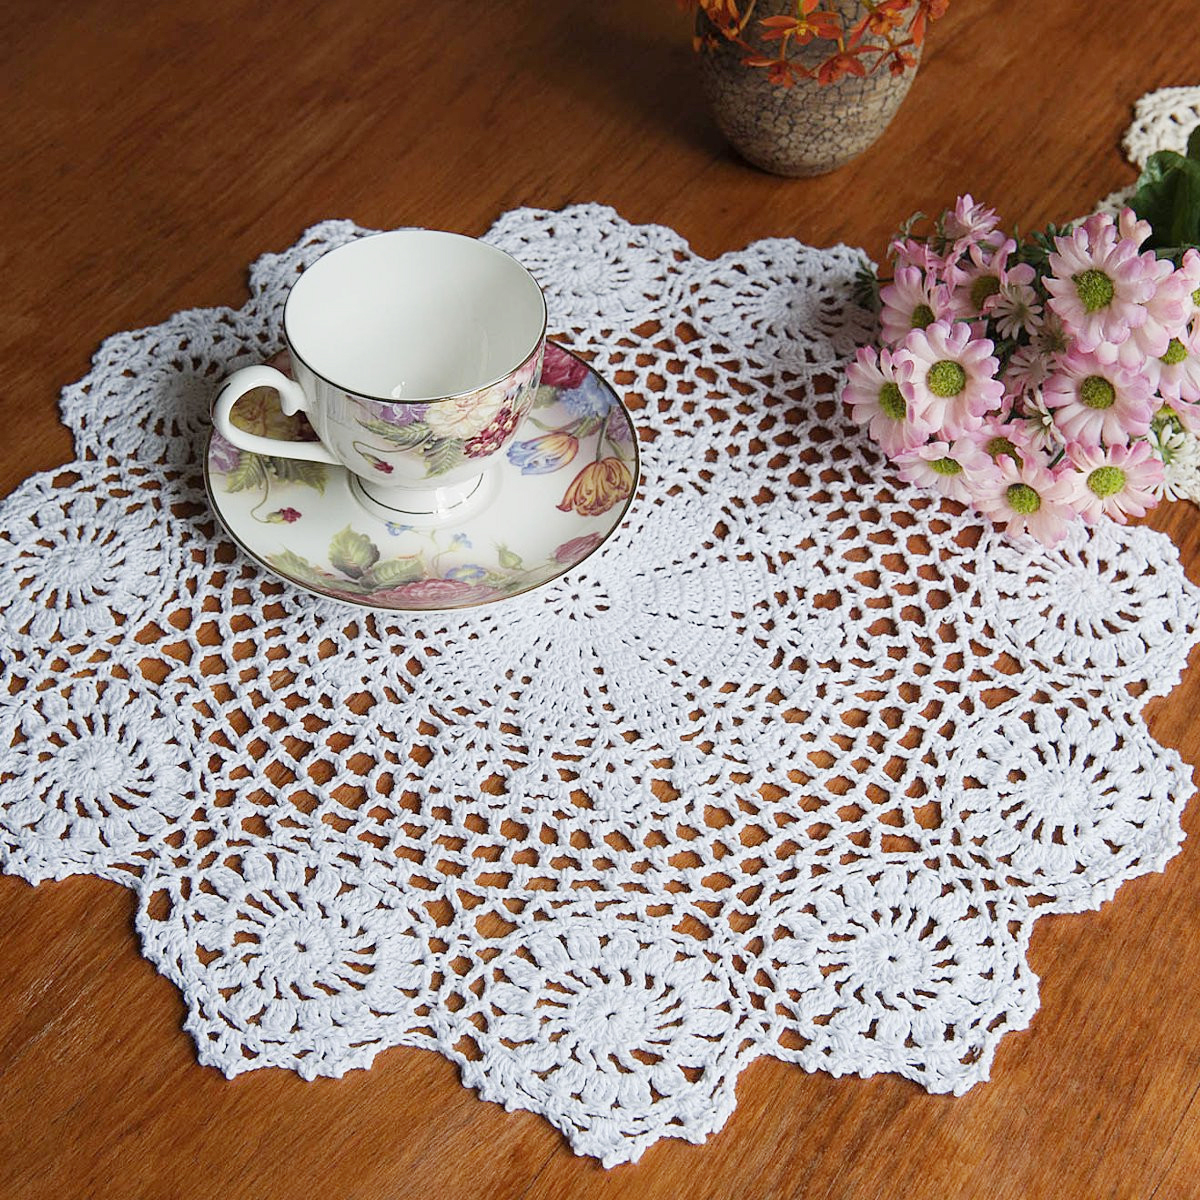 Meigar 14'' Handmade Crochet Doilies Lace Flower Tablecloth Cotton Doily Placemats Table Cover Mat Coasters Home Decor,Round,White